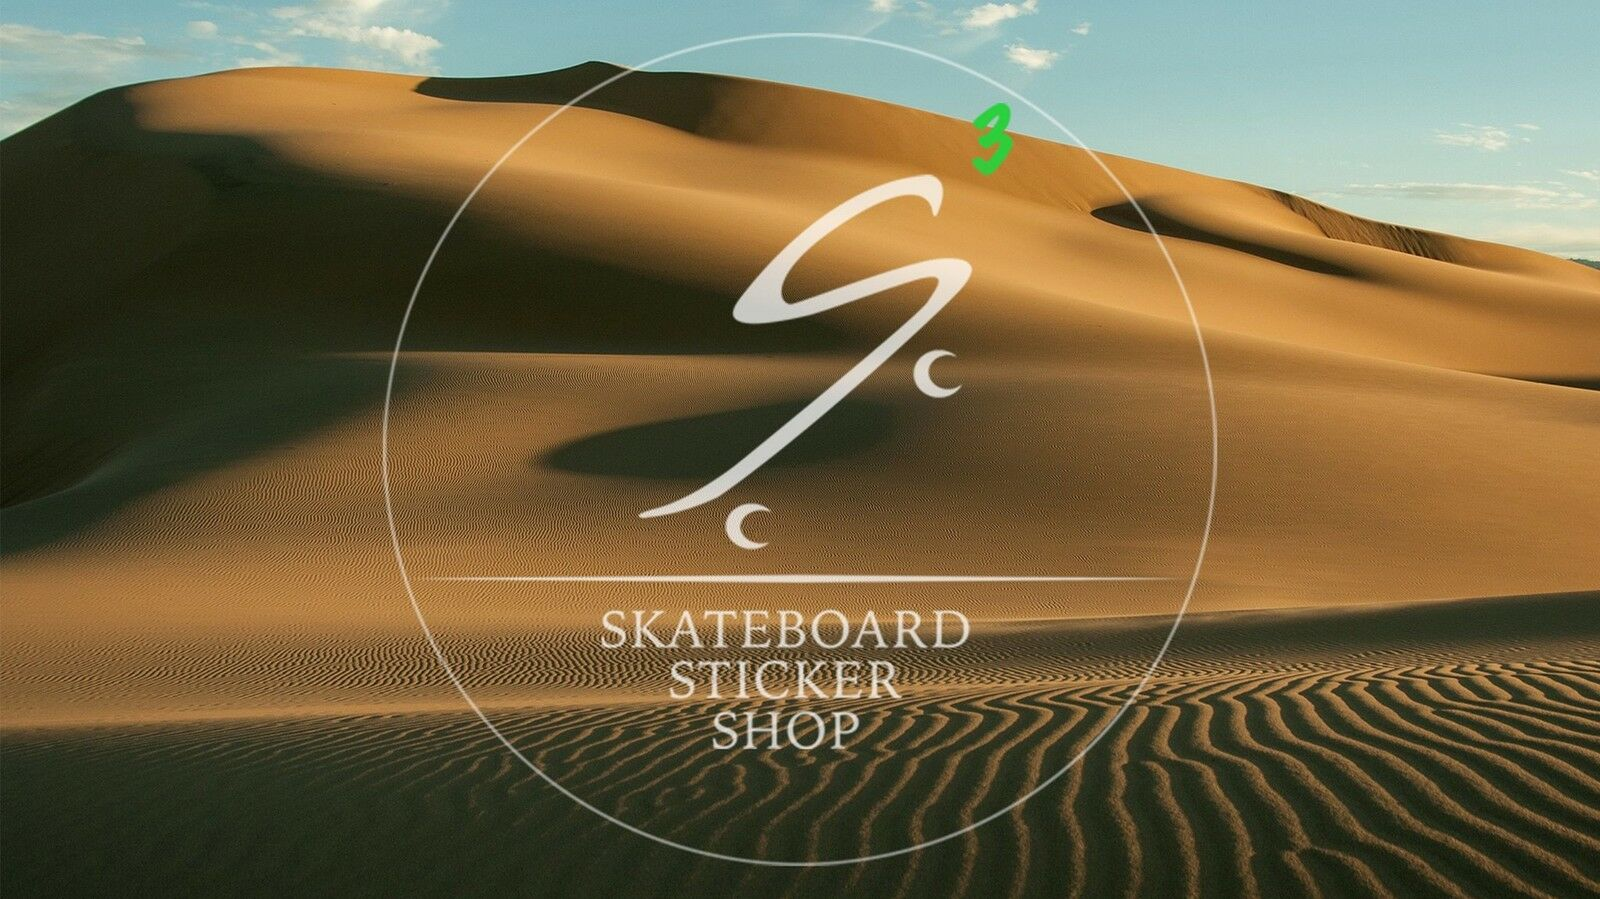 Skateboard Sticker Shop